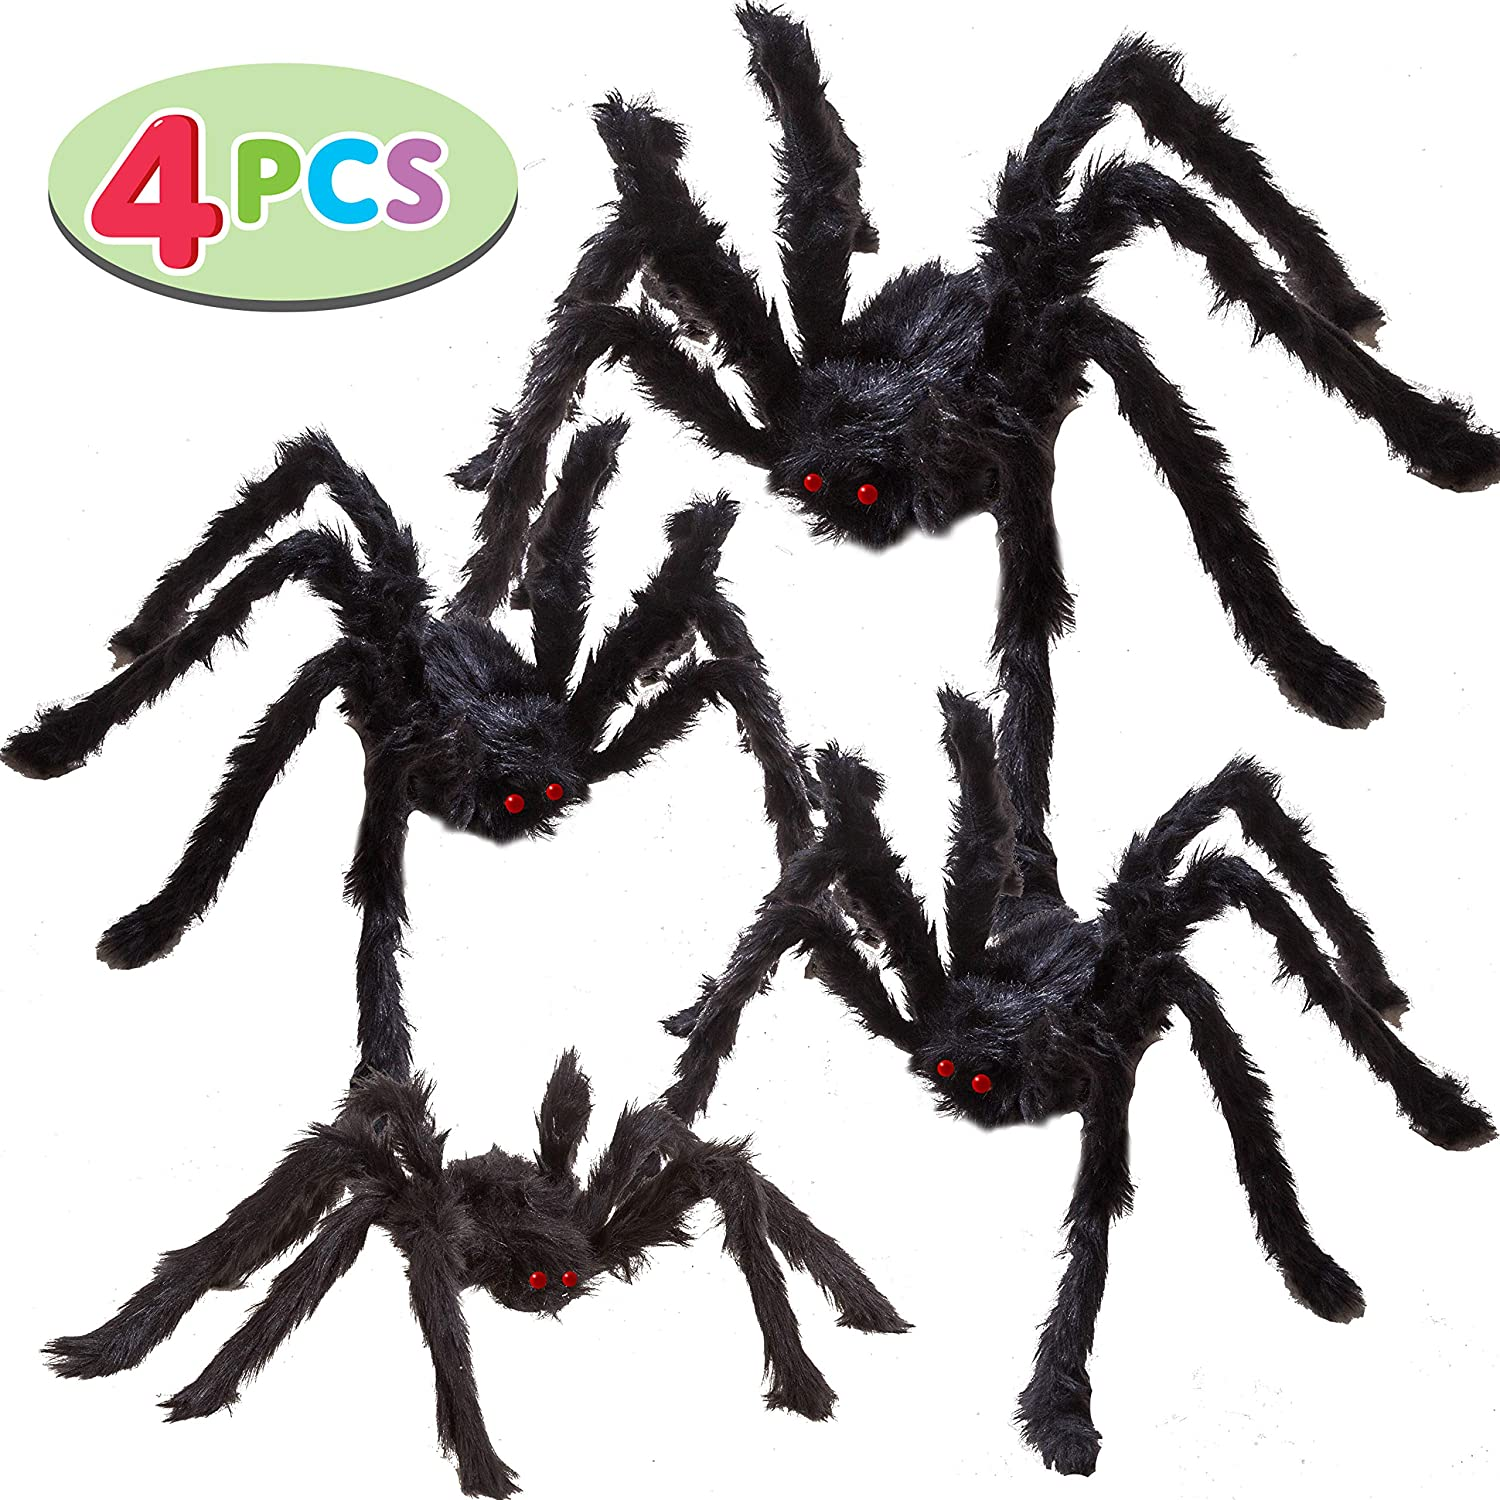 "Four Halloween Realistic Hairy Spiders Set Valuable Halloween Props Halloween Spider Set for Indoor and Outside Decorations e 47 25"" Two 35 5"""